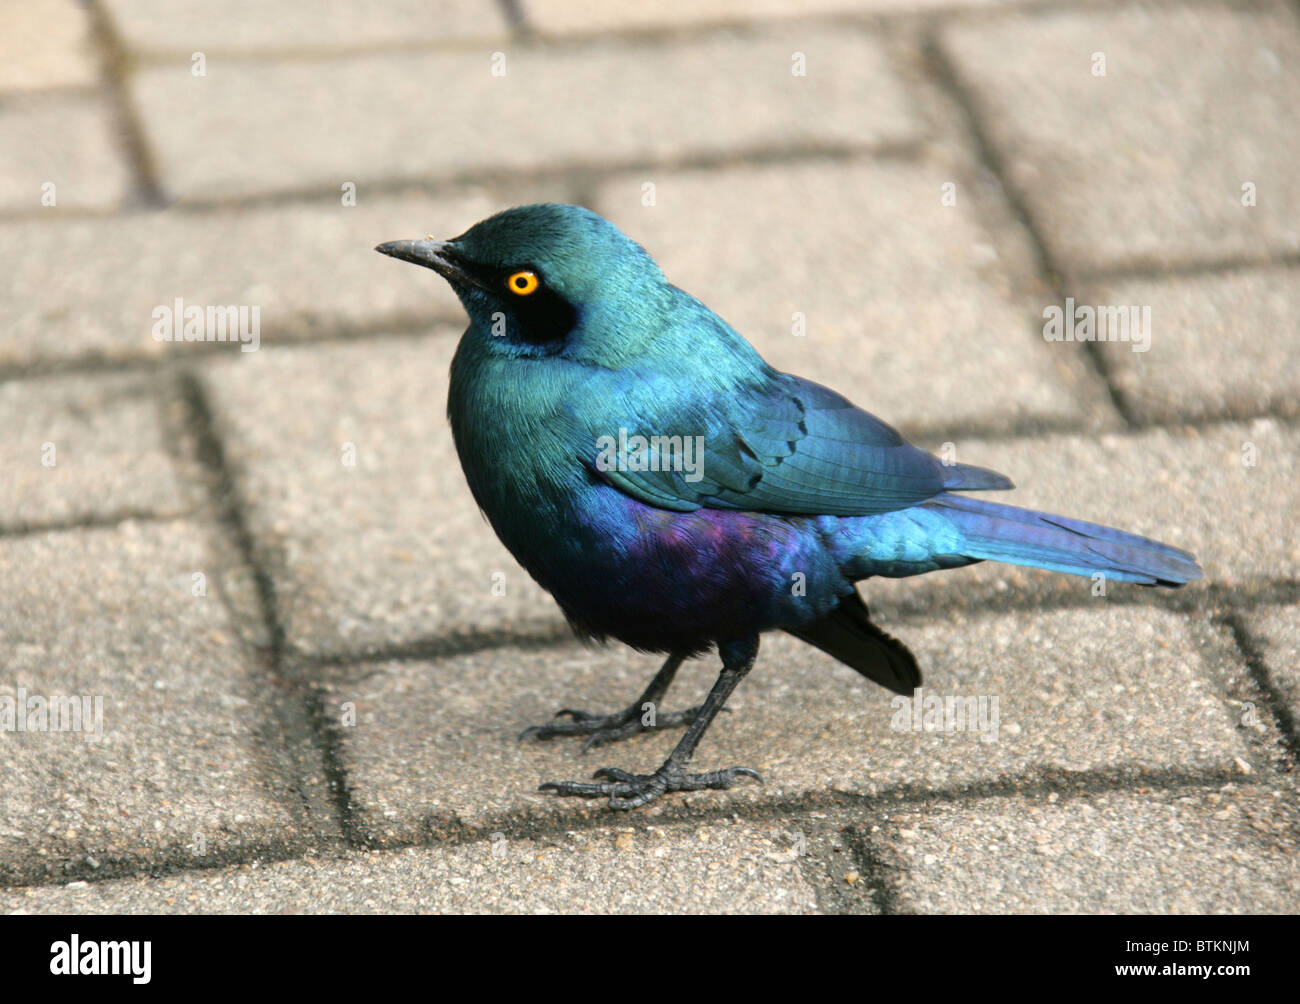 Cape Glossy Starling, Lamprotornis nitens, Sturnidae, South Africa - Stock Image